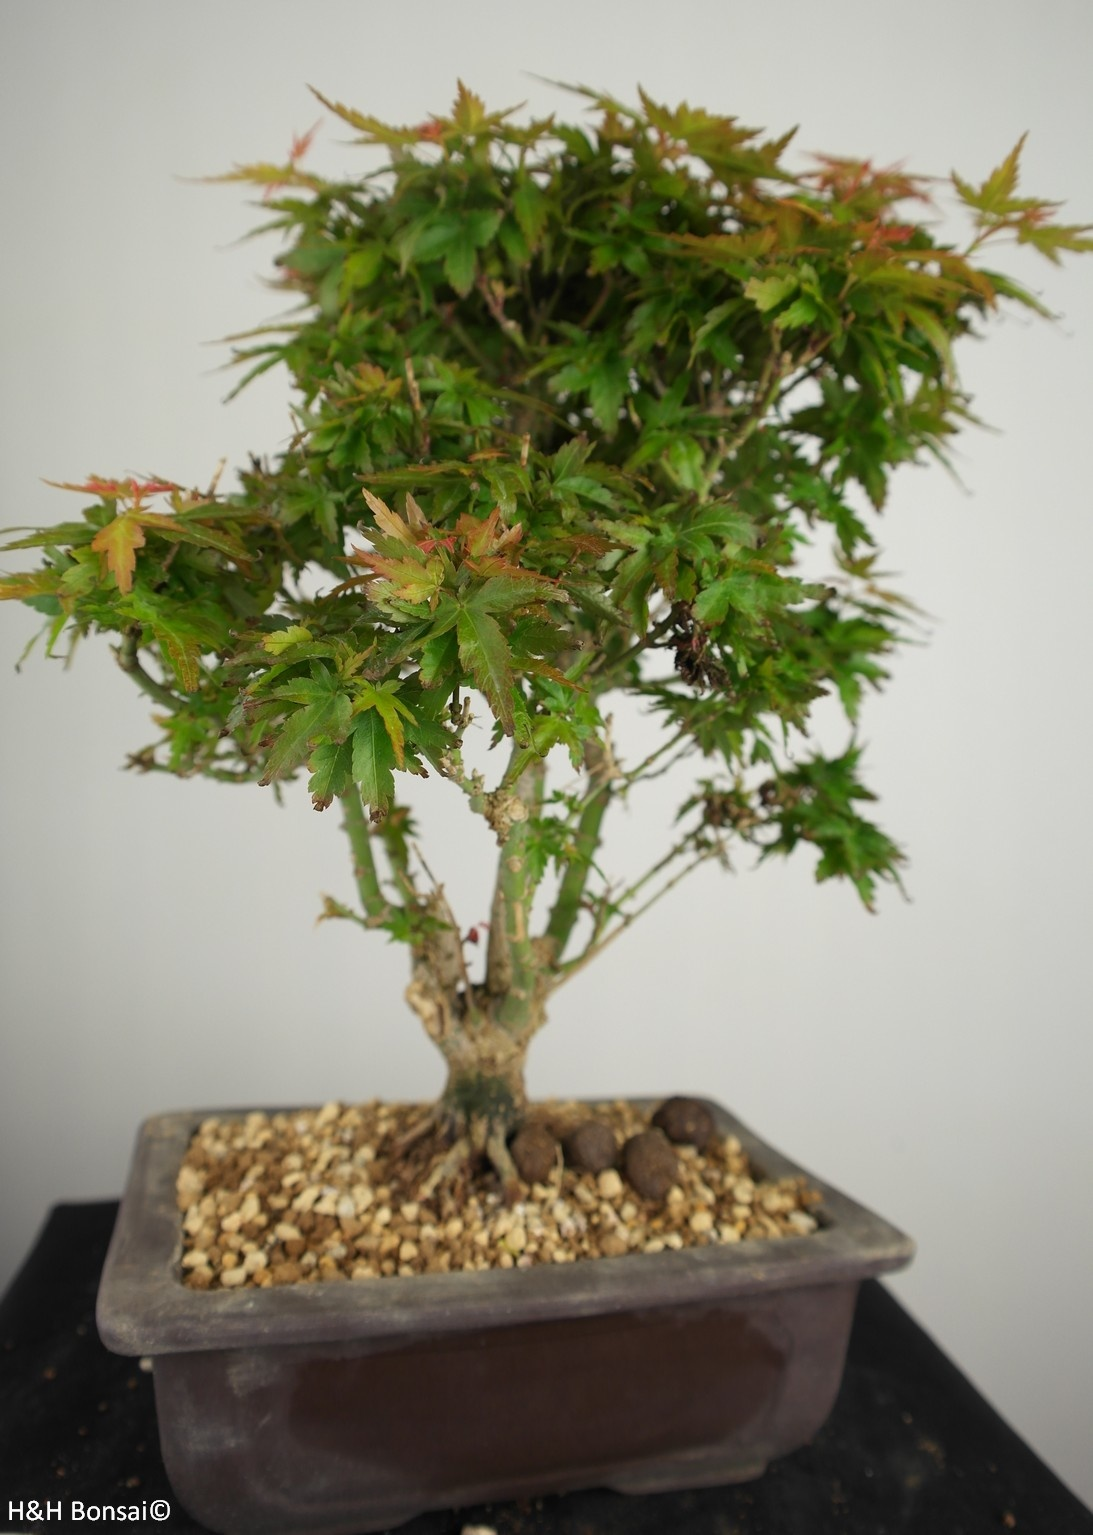 Bonsai Japanese Maple Kotohime, Acer palmatum Kotohime, no. 7694